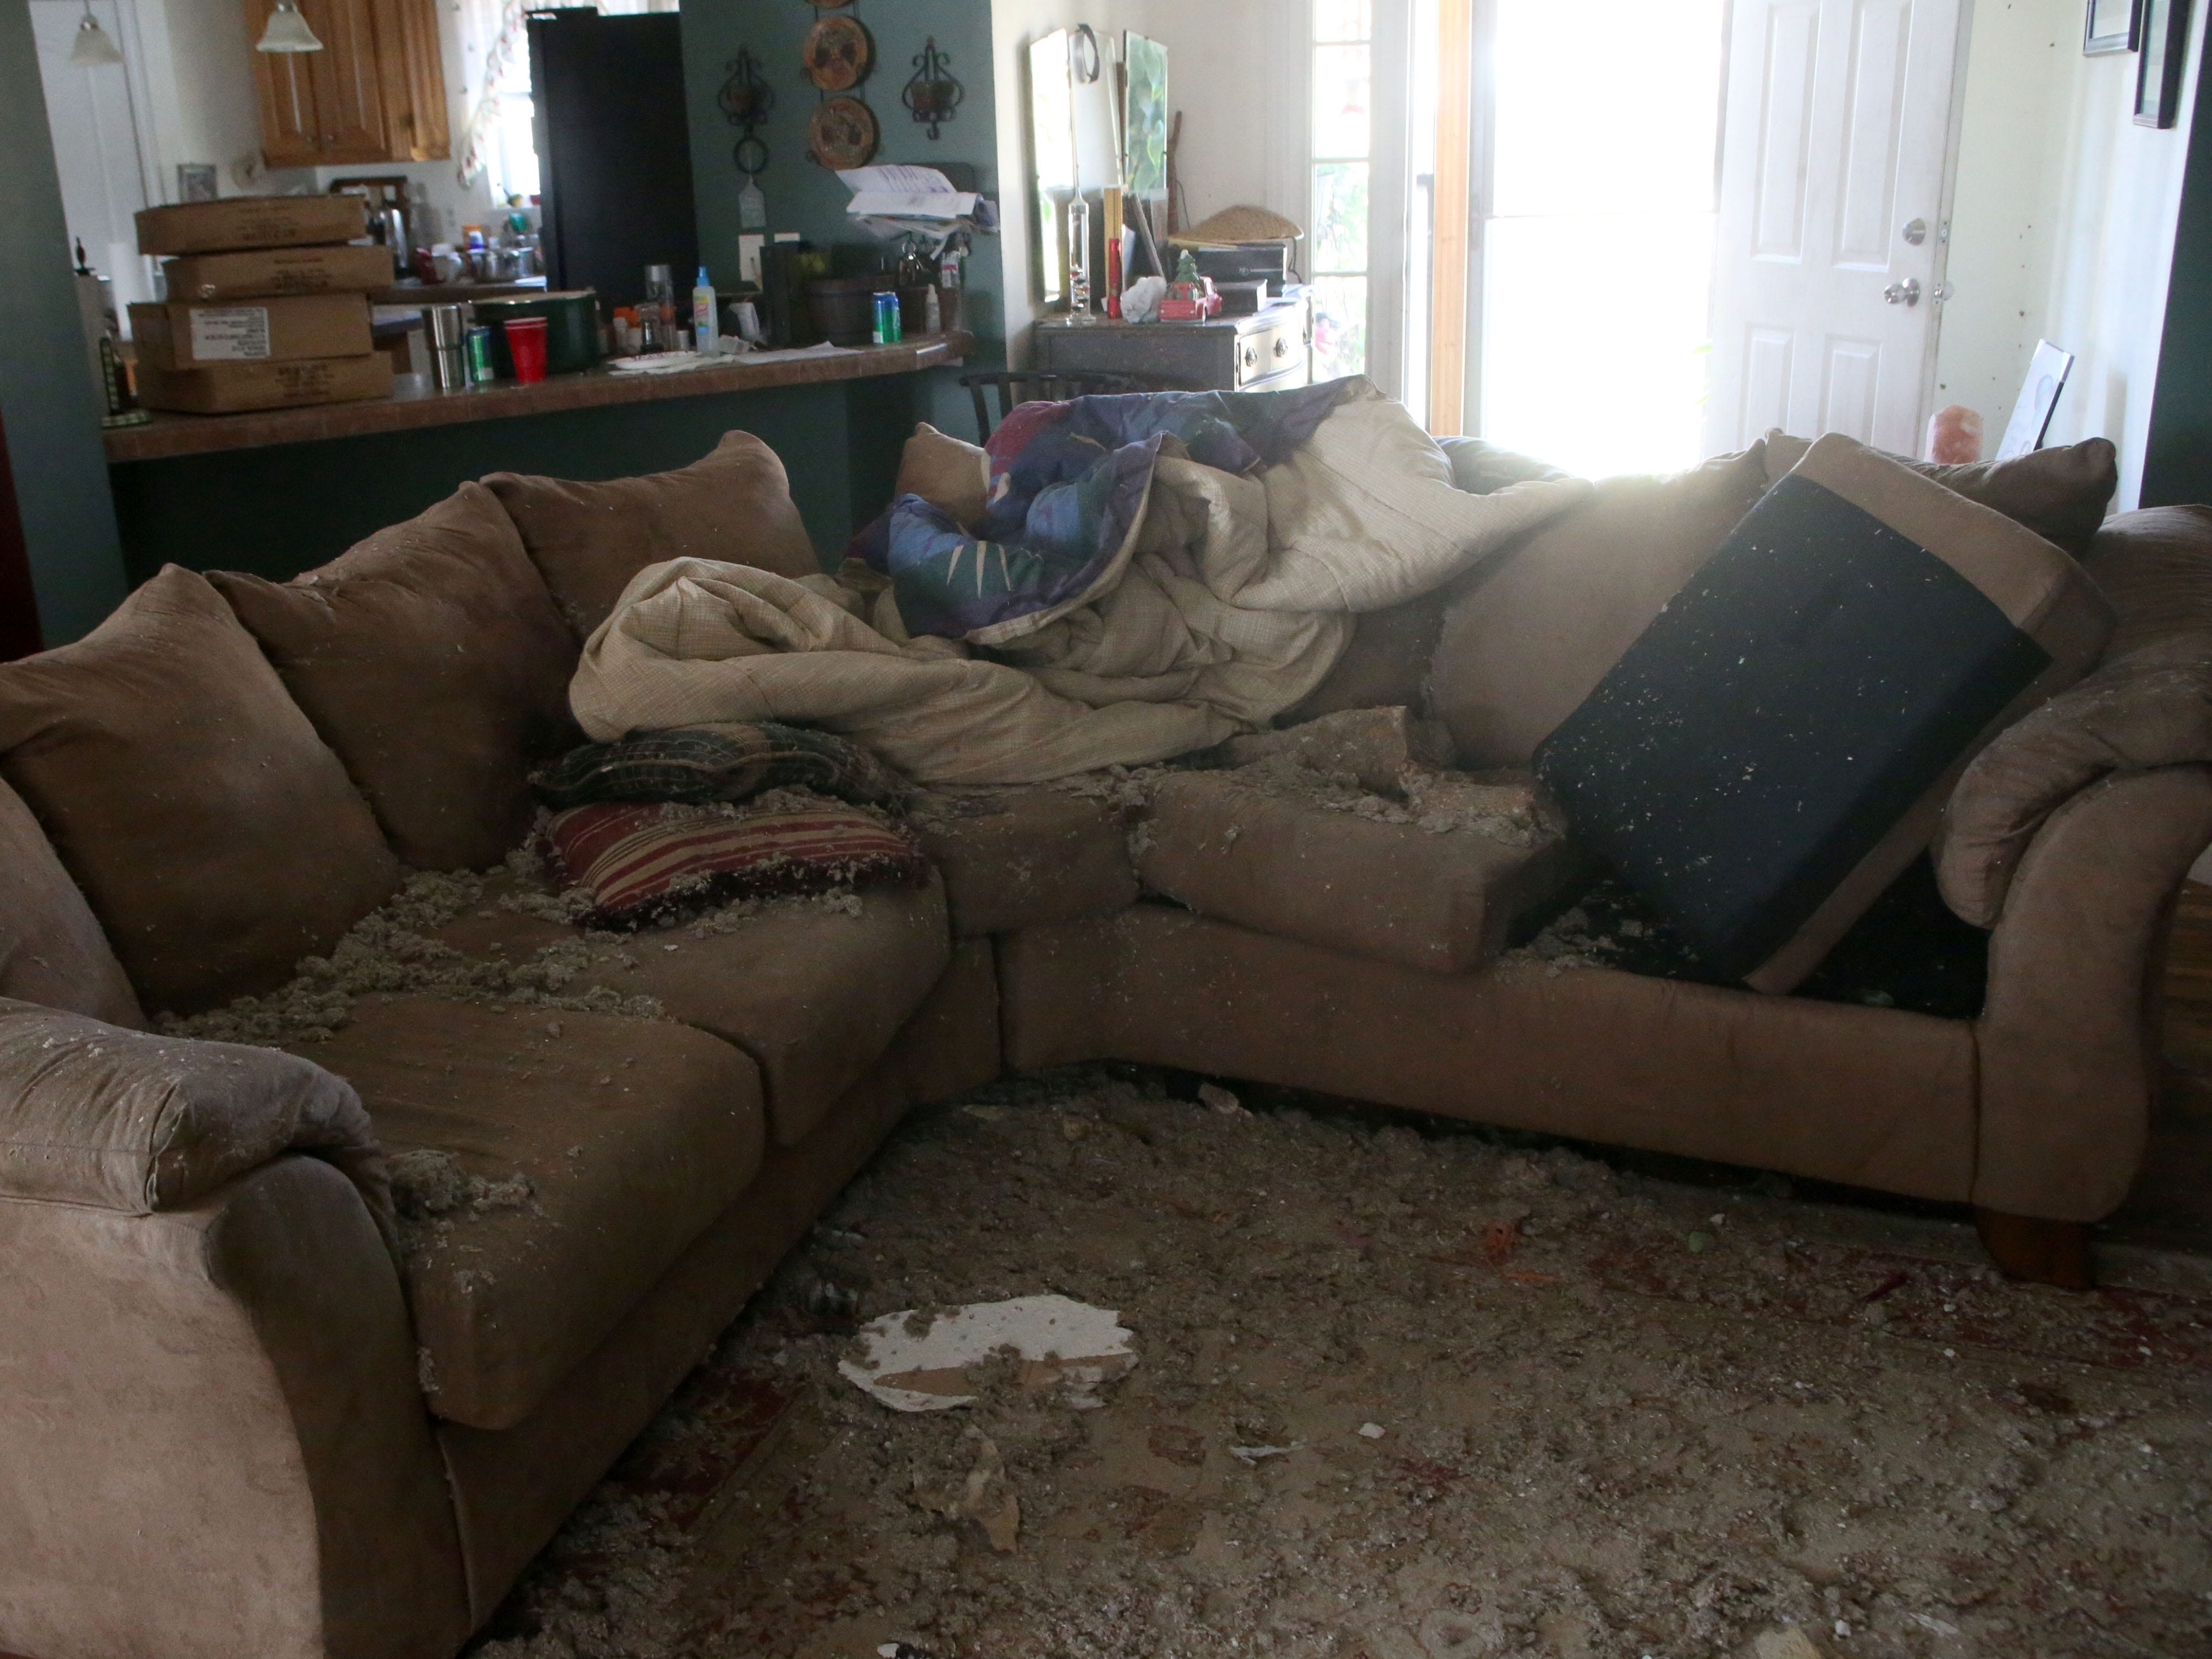 Remnants of the concrete that killed Sarah Radney, an 11 year old girl who died during Hurricane Michael in Donalsonville, Ga., remain on the couch in her grandparents' home,  on Thursday, Oct. 18, 2018.